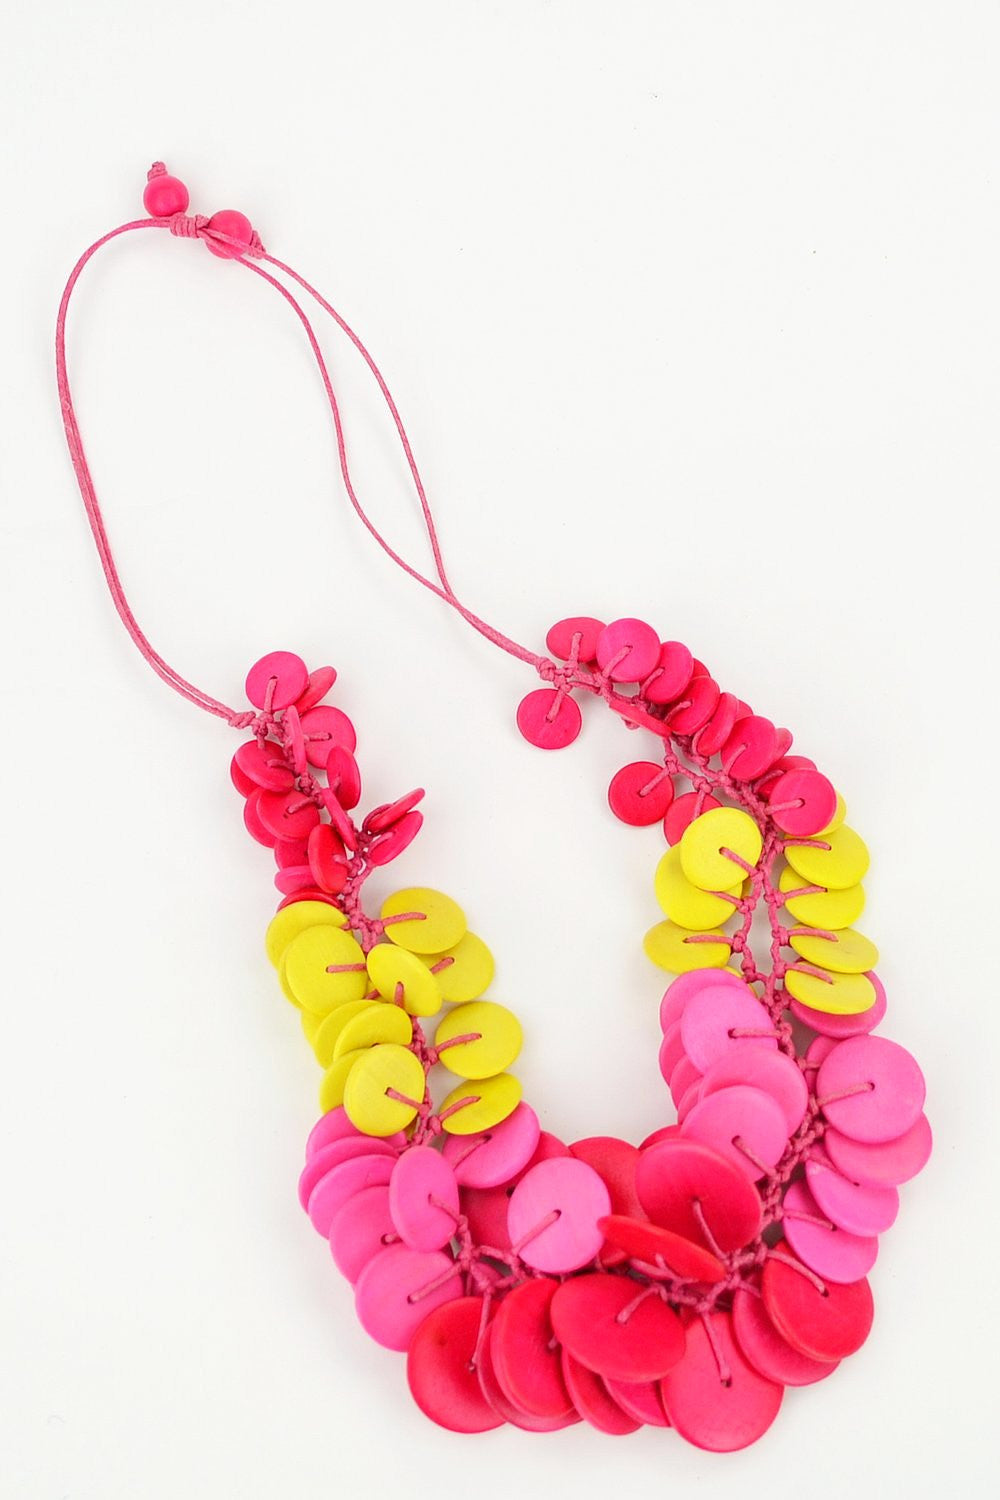 Pink Button Necklace - at I Love Tunics @ www.ilovetunics.com = Number One! Tunics Destination